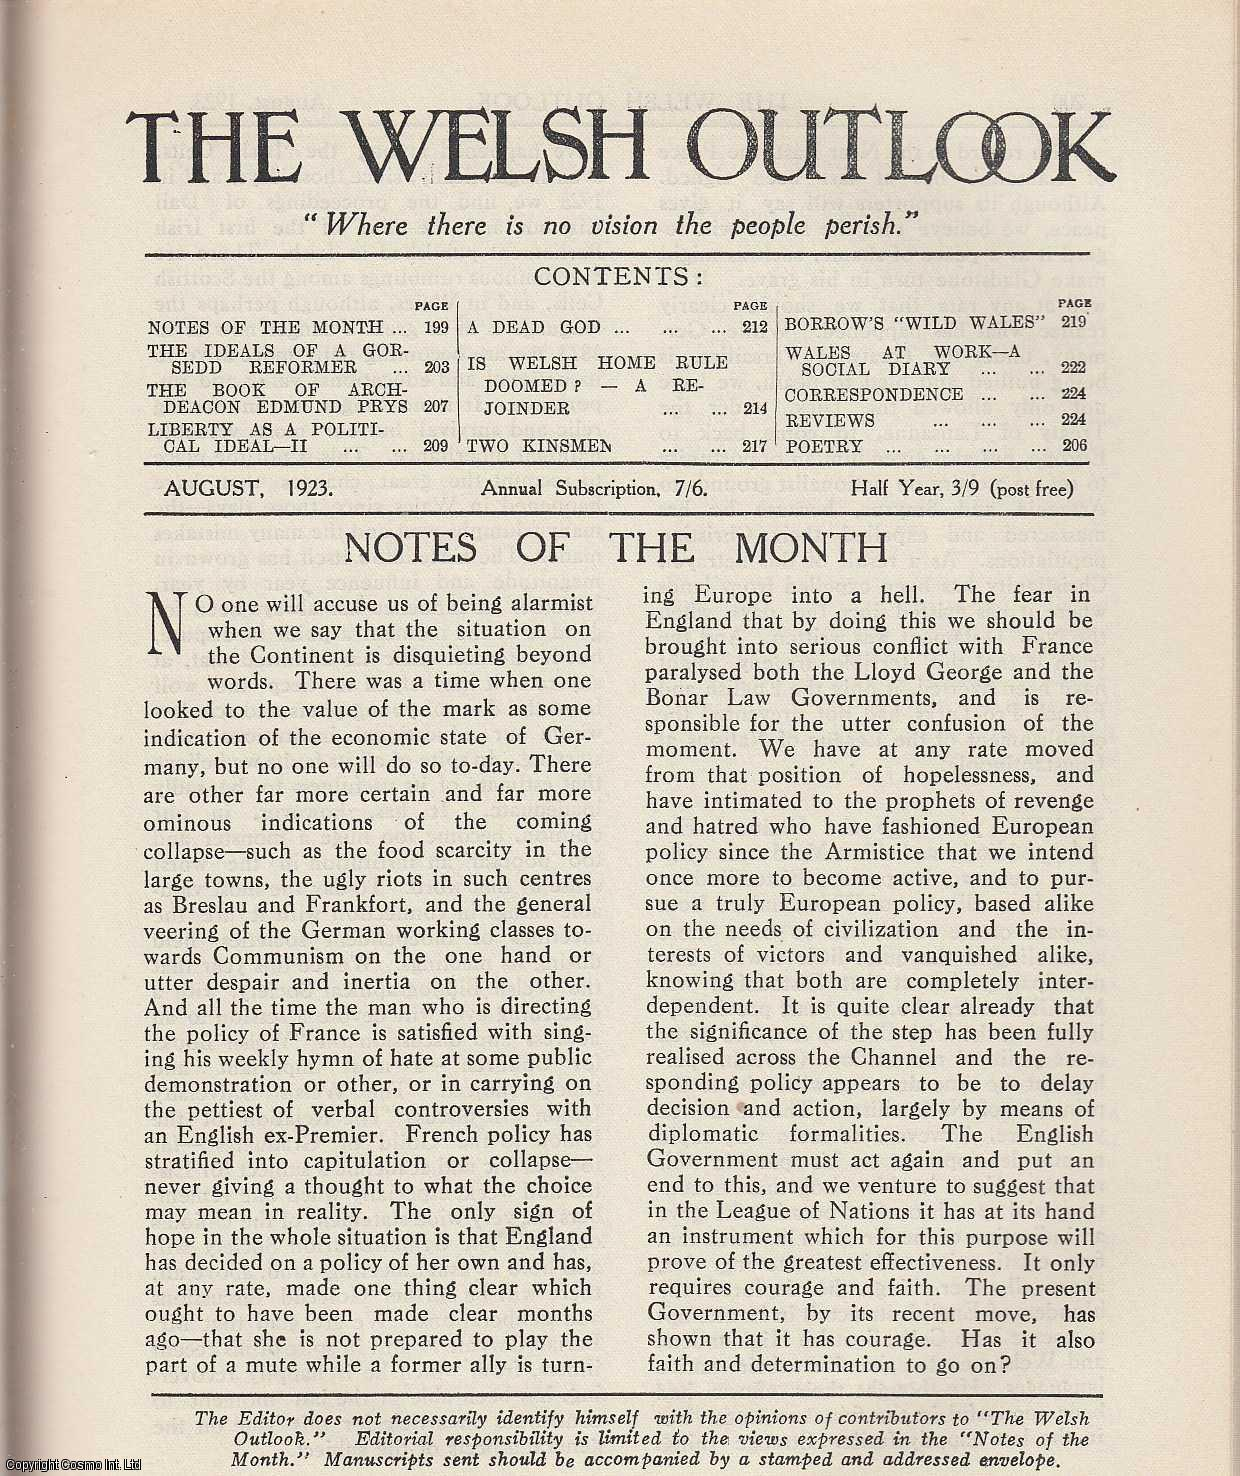 The Welsh Outlook. A Monthly Journal of National Social Progress. August, 1923. Contains; The Ideals of a Gorsedd Reformer by Beriah Gwynfe Evans; The Book of Archdeacon Edmund Prys by The Archdeacon of Bangor; Liberty as a Political Ideal by Sir Harry R. Reichel; A Dead God by Anlach Williams; Is Welsh Home Rule Doomed? by E. Lloyd Owen; Two Kinsmen by T. Huws Davies; Borrow's Wild Wales by Professor H. Wright; Wales at Work - A Social Diary., Thomas Jones (Editor)